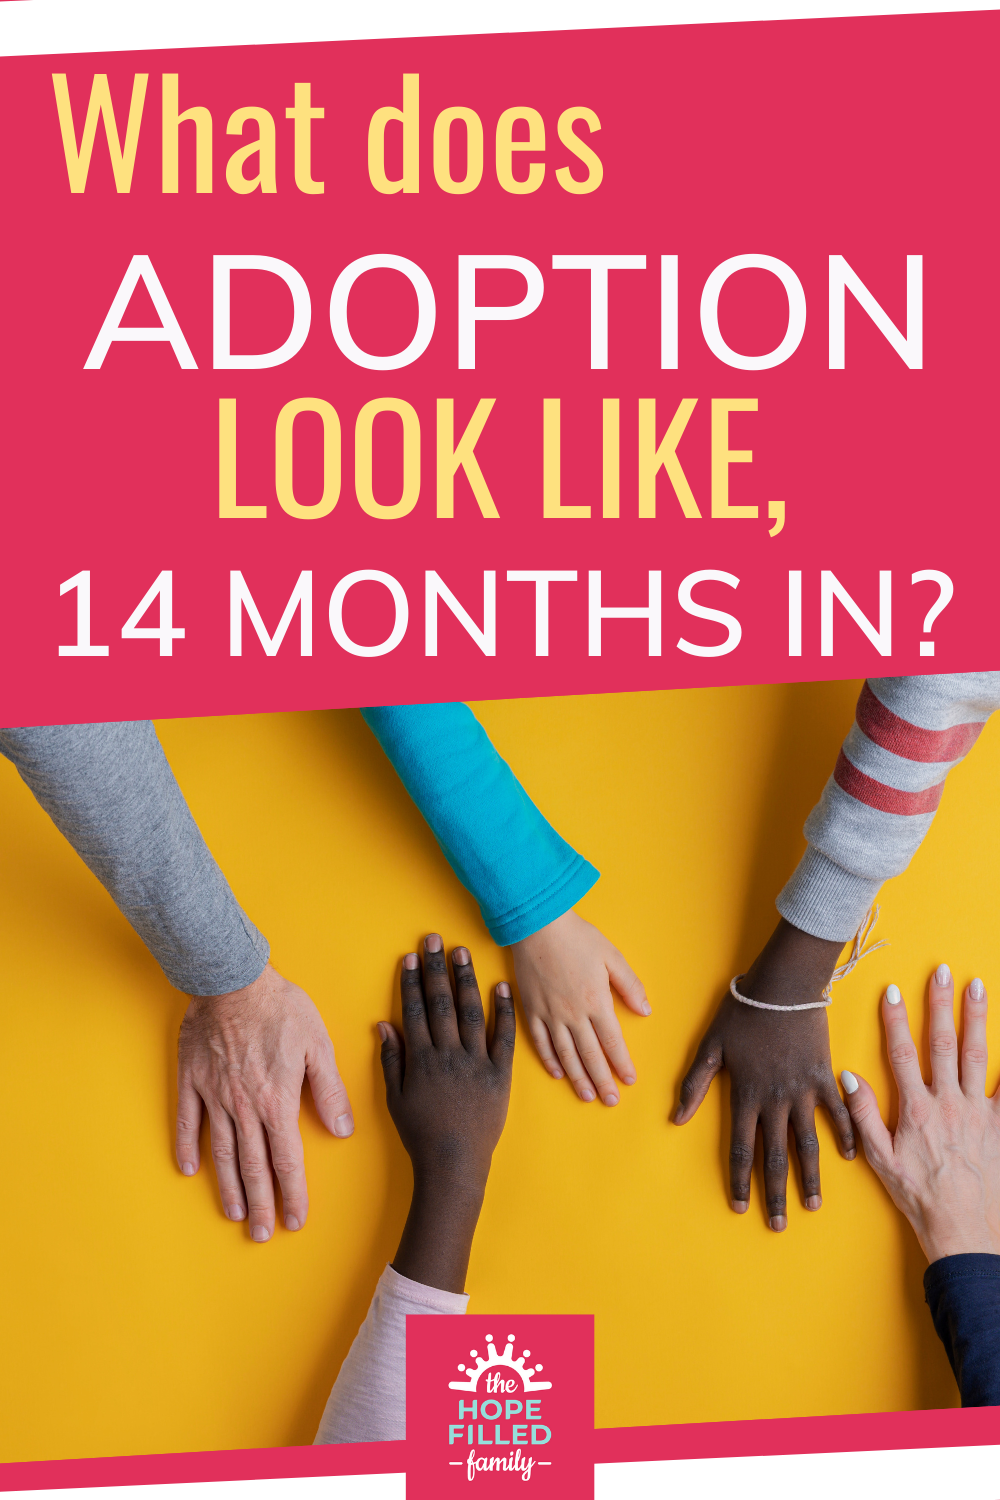 What does the adoption journey look like after 14 months?